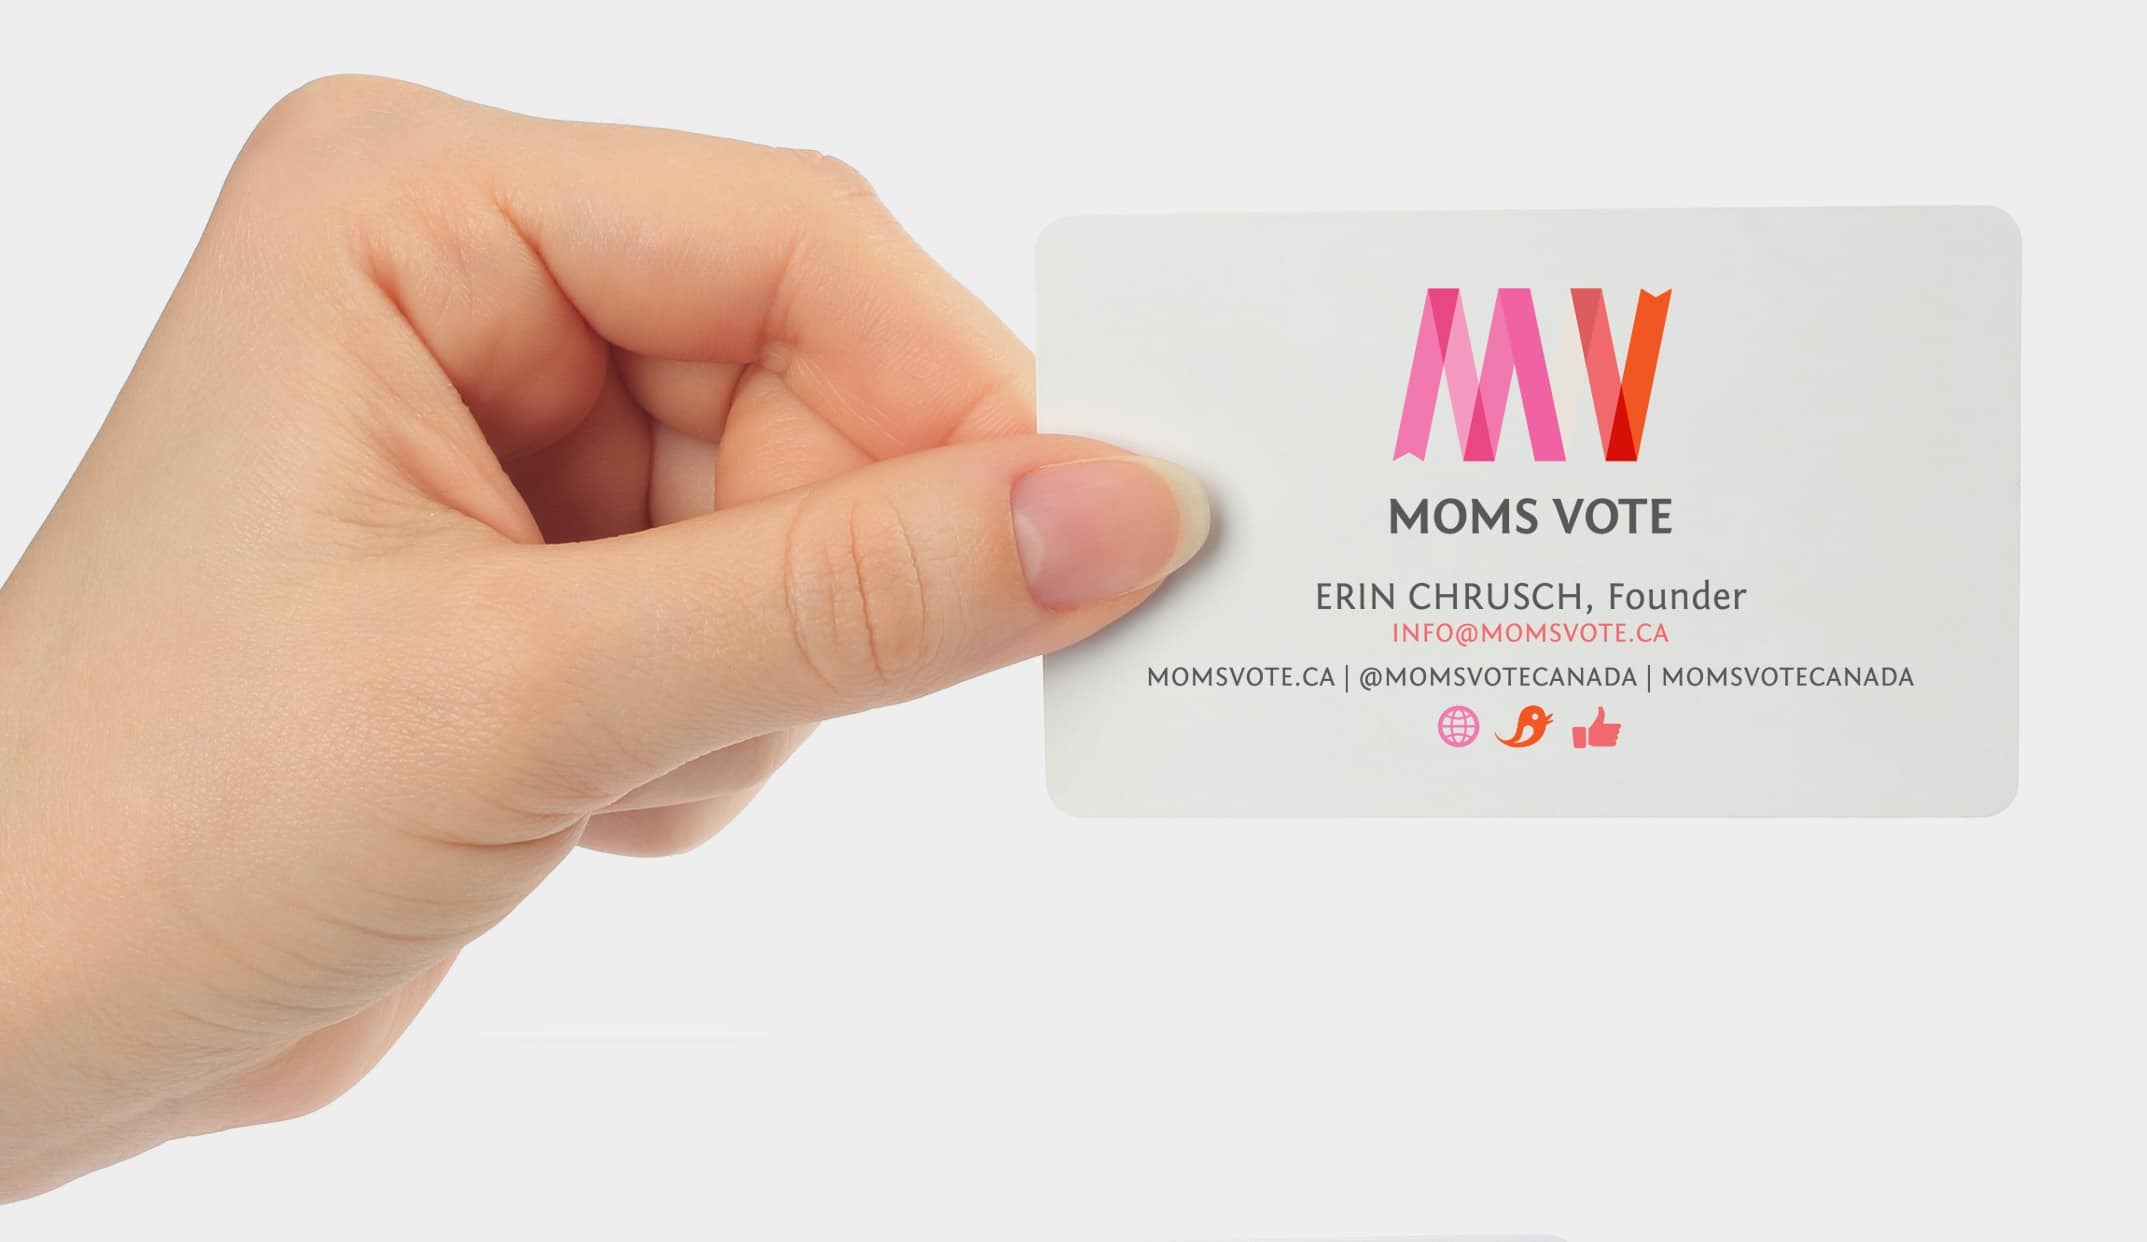 moms-vote-card-mockup